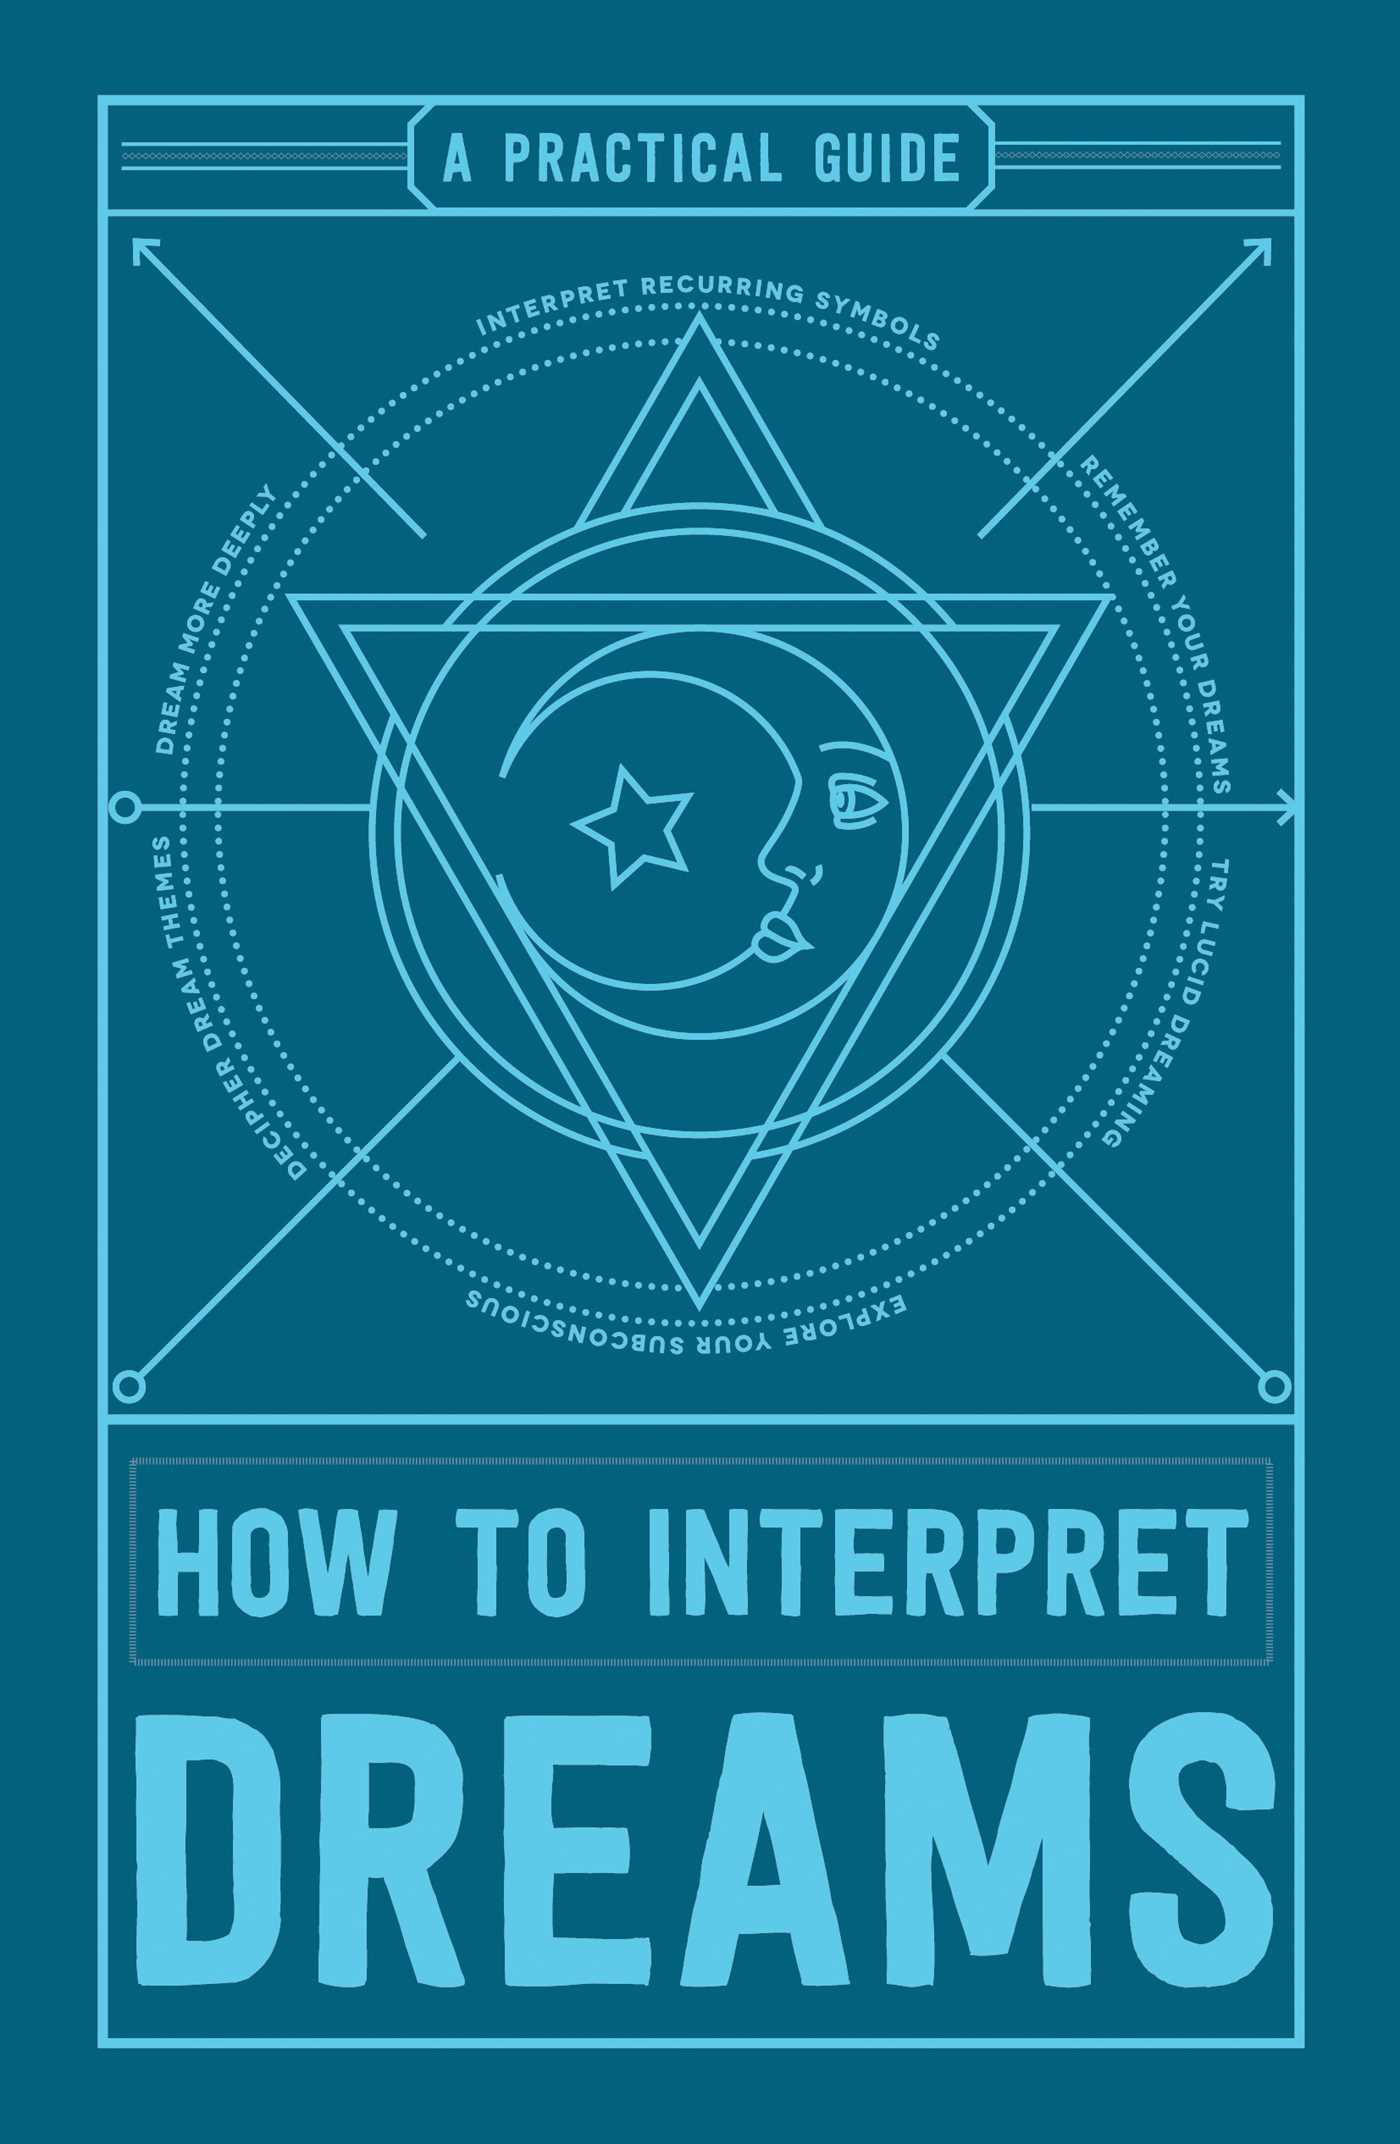 What do your dreams really mean?